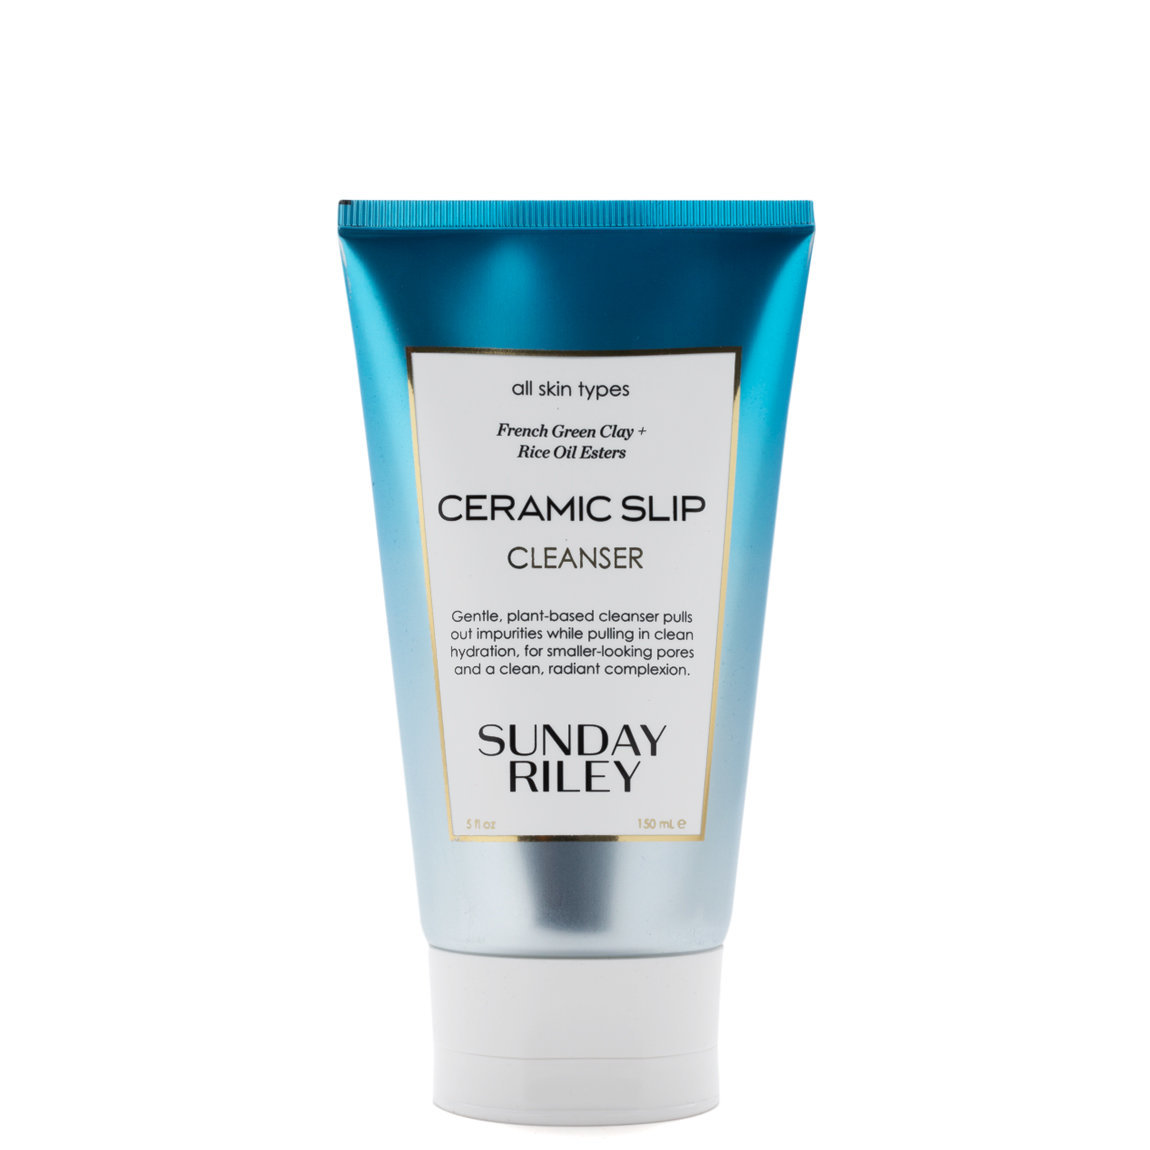 Sunday Riley Ceramic Slip Clay Cleanser product smear.